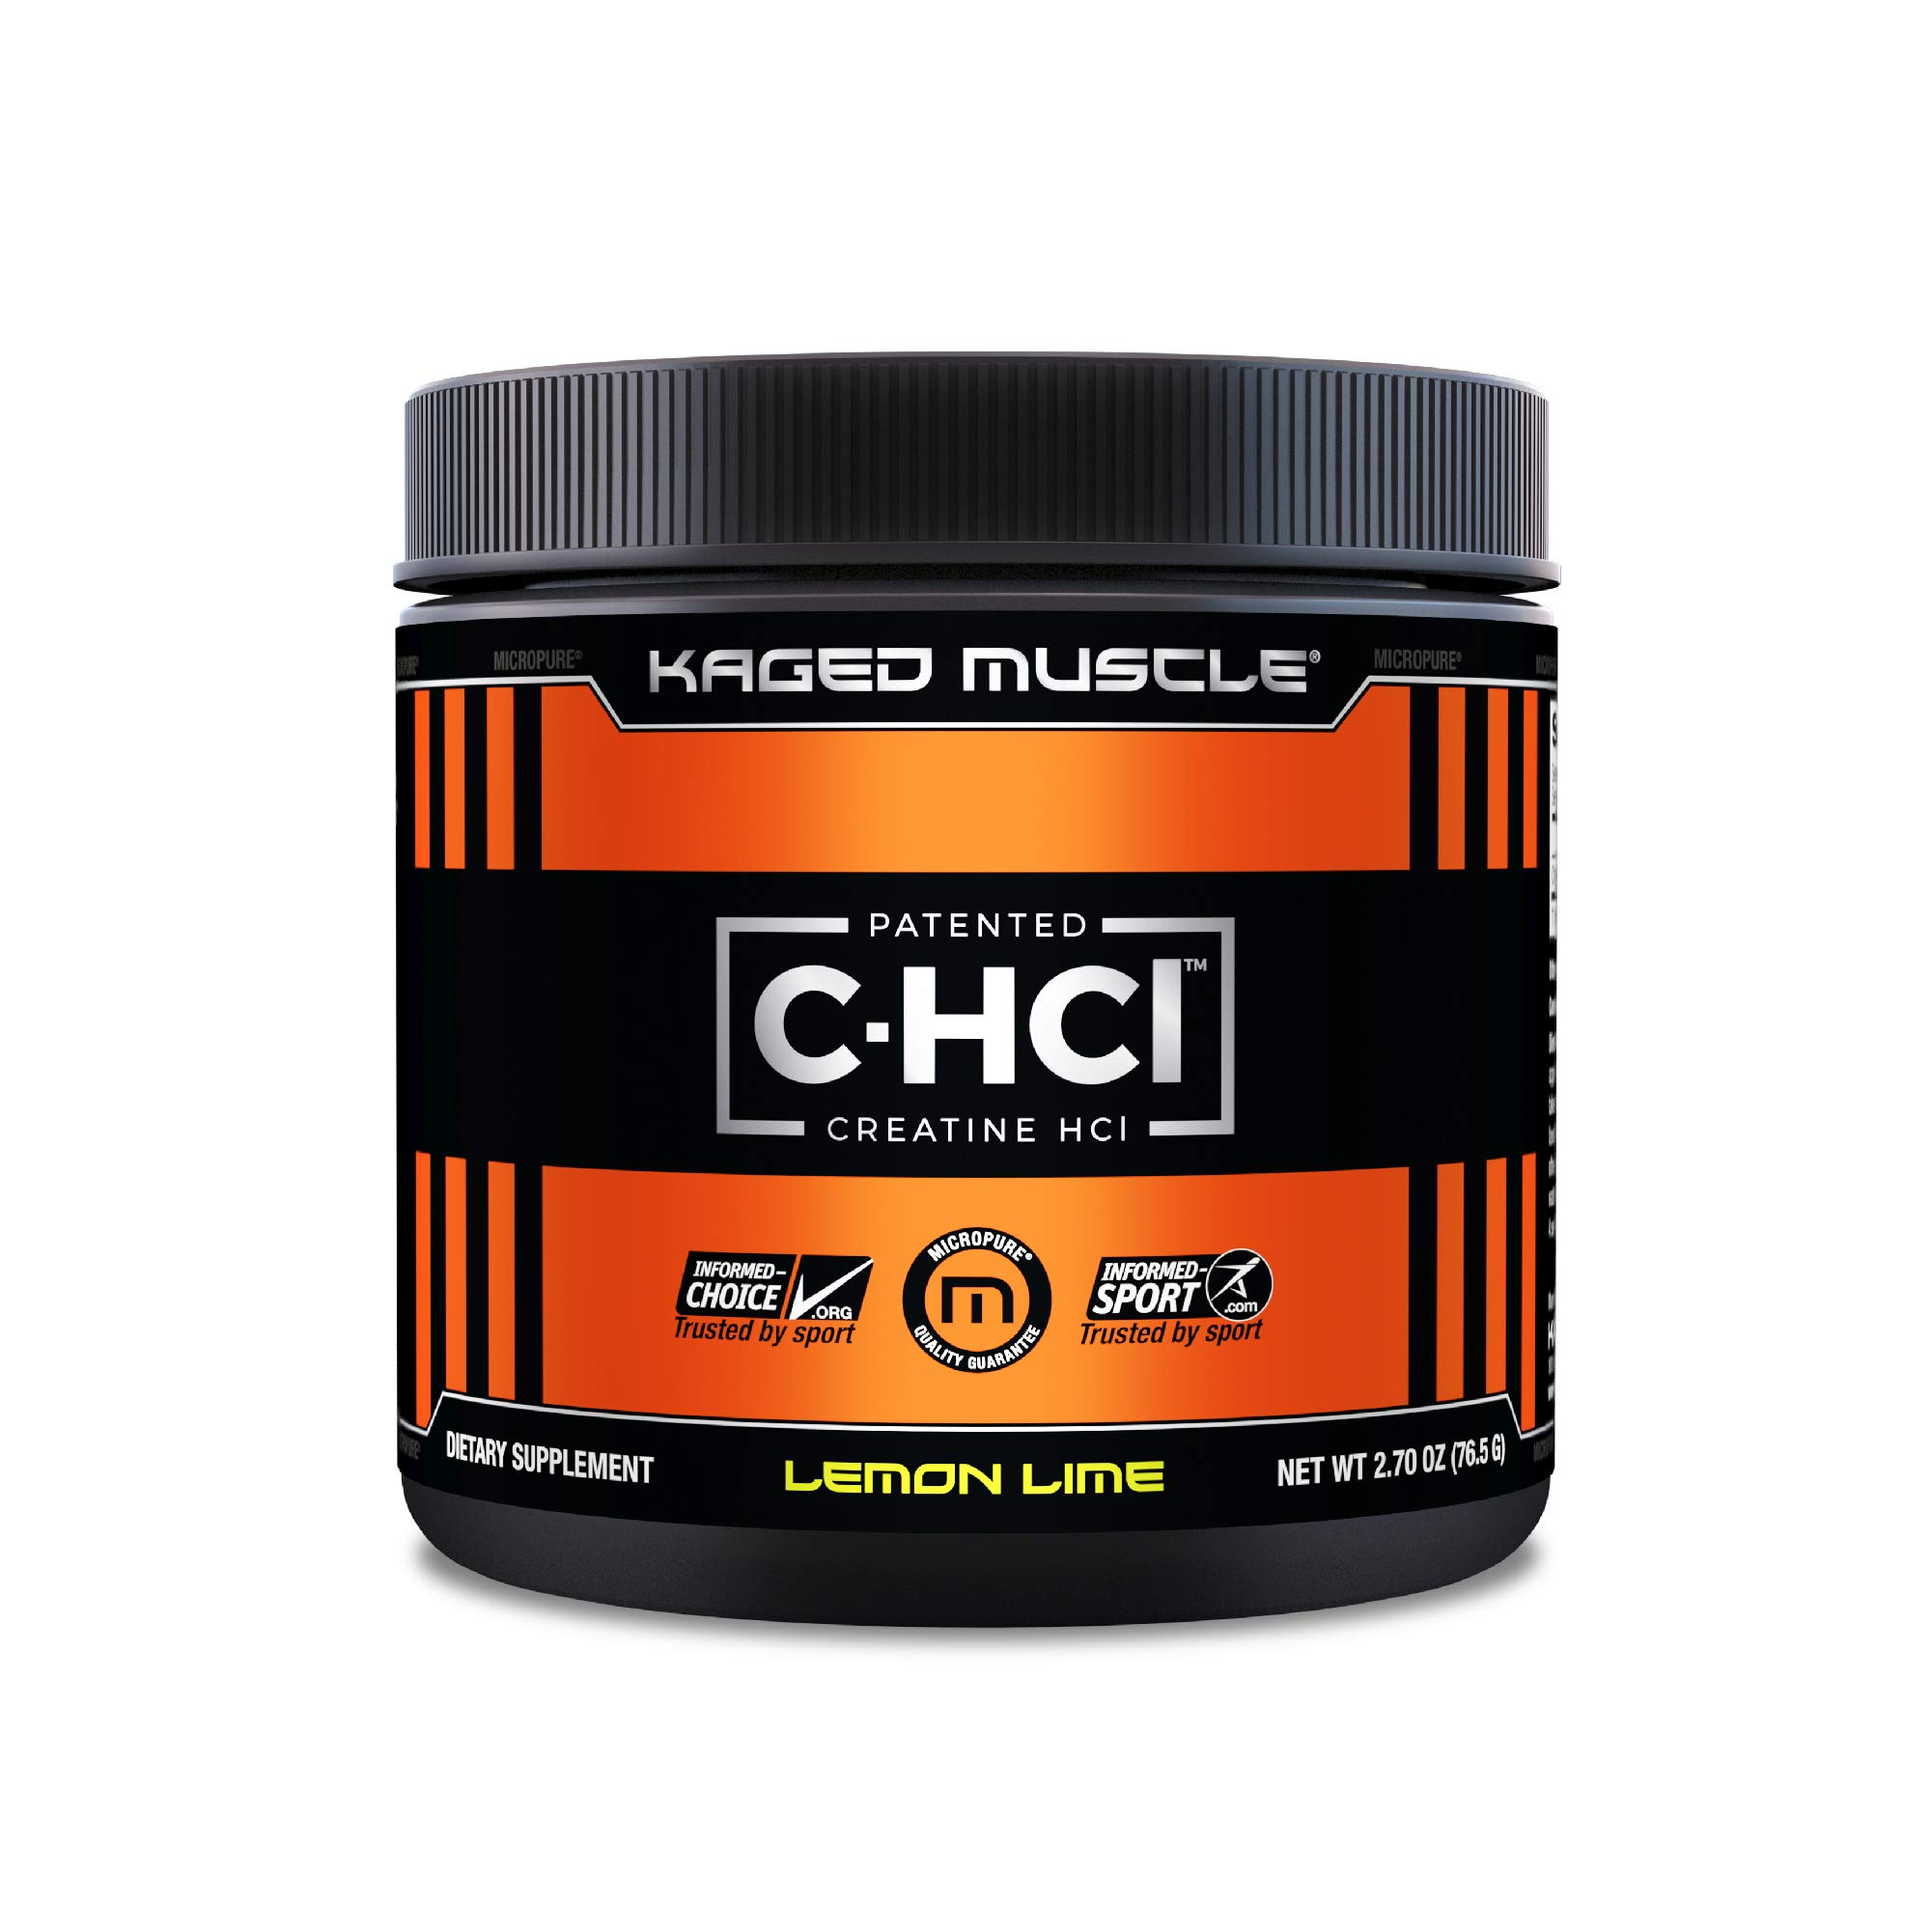 Creatine HCl Powder, Kaged Muscle Creatine HCl, Patented Creatine Hydrochloride Powder, Highly Soluble Creatine Hydrochloride 750mg, Lemon Lime, 75 Servings